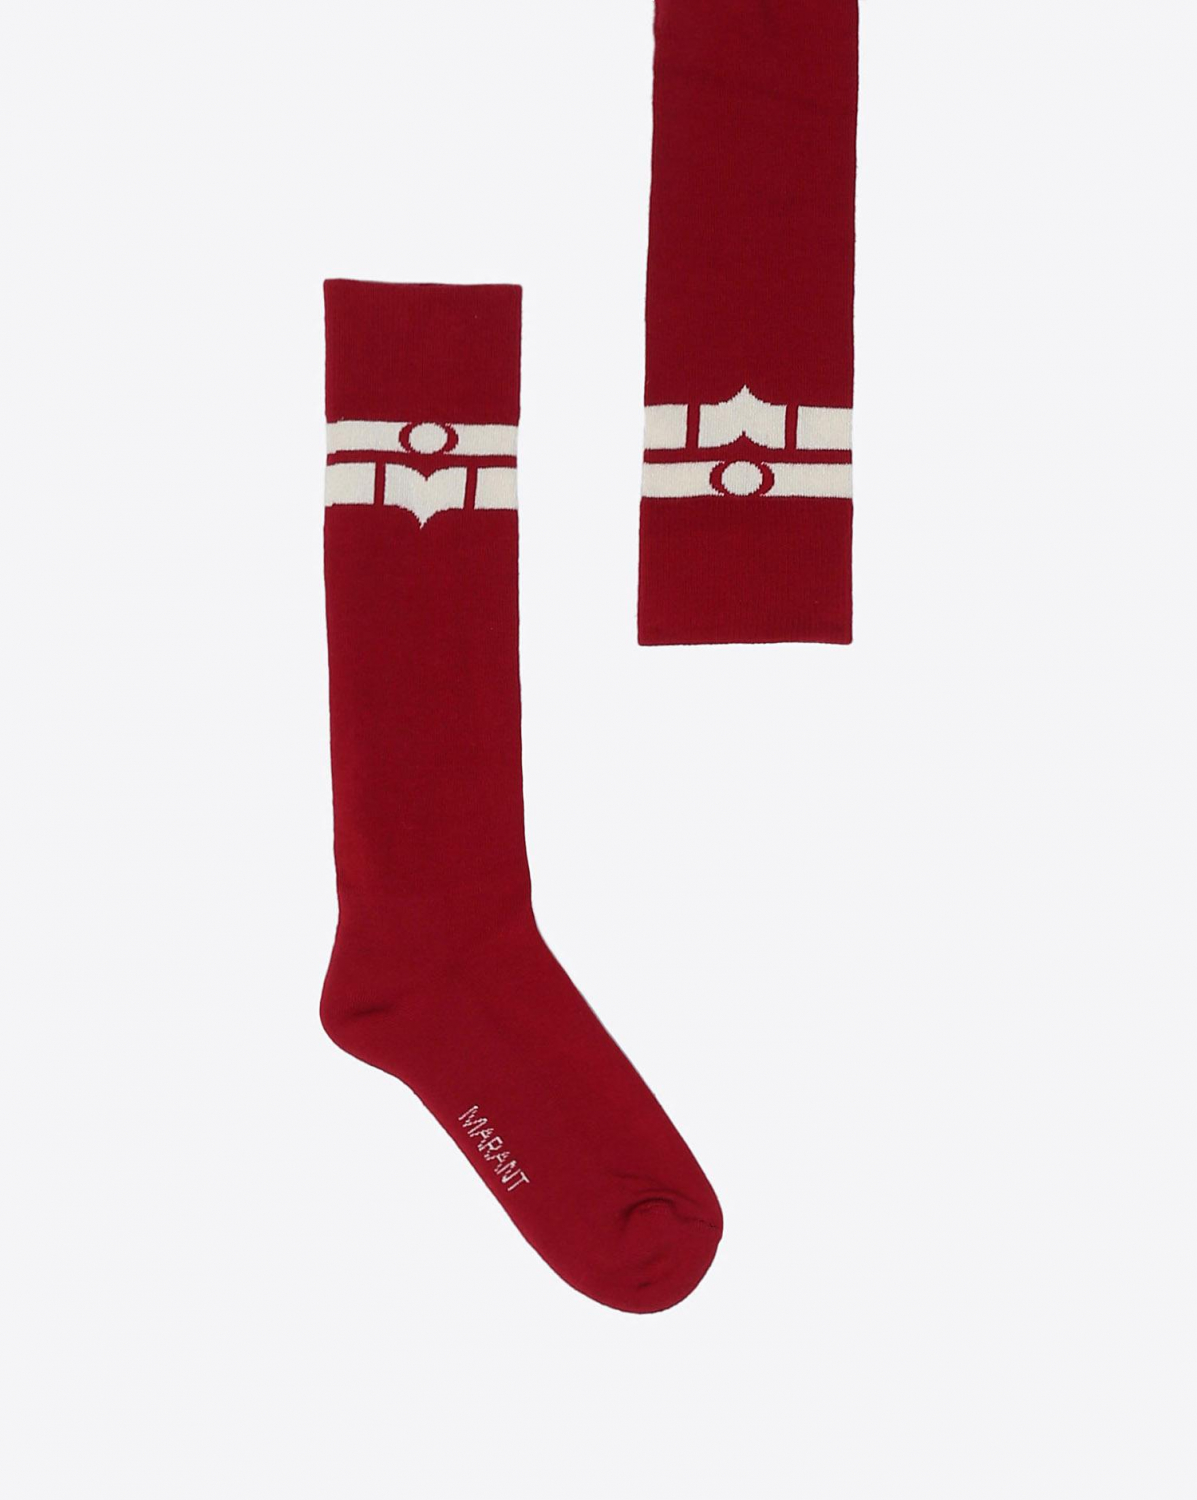 Isabel Marant Accessoires Chaussettes VIBE - Red